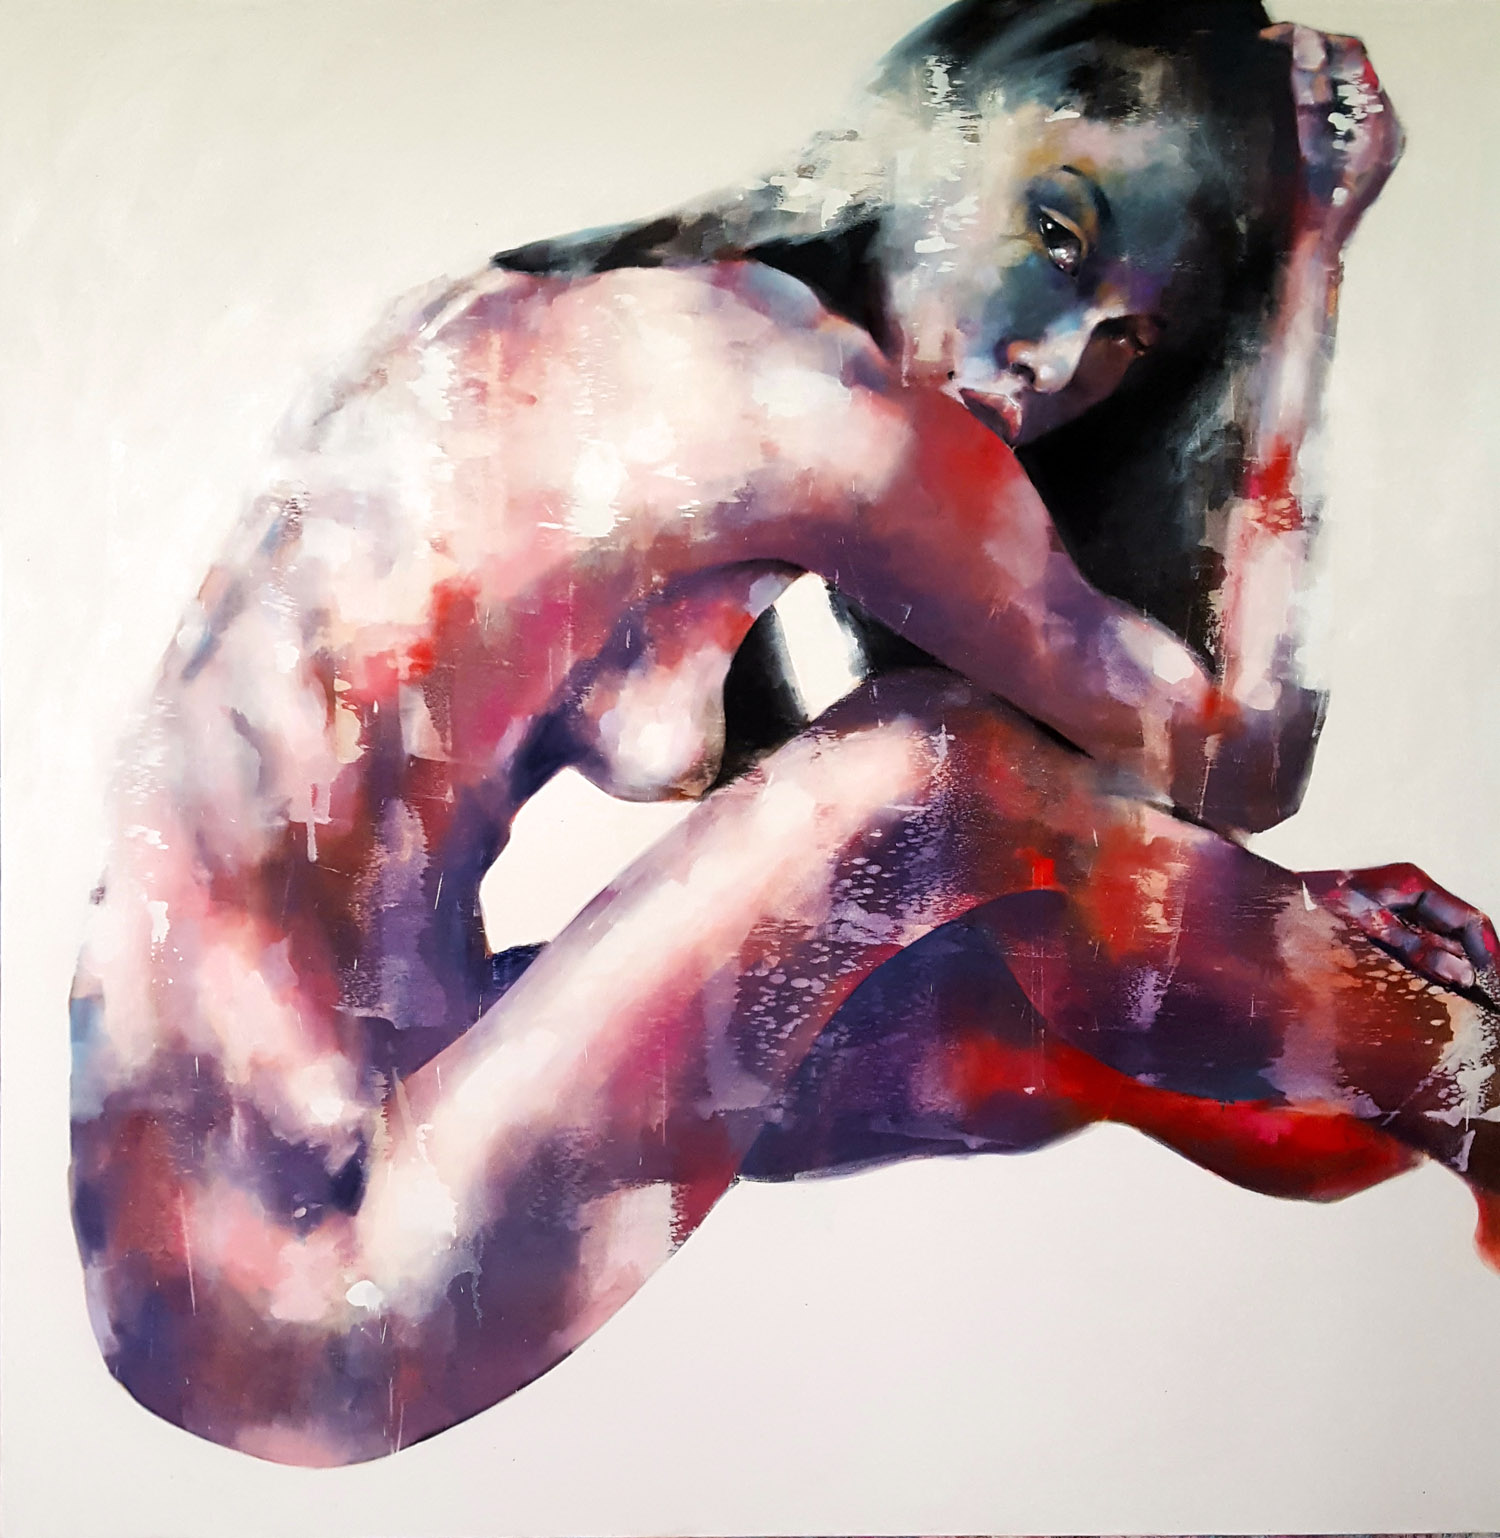 8-18-17 figure with red, oil on canvas, 150x150cm